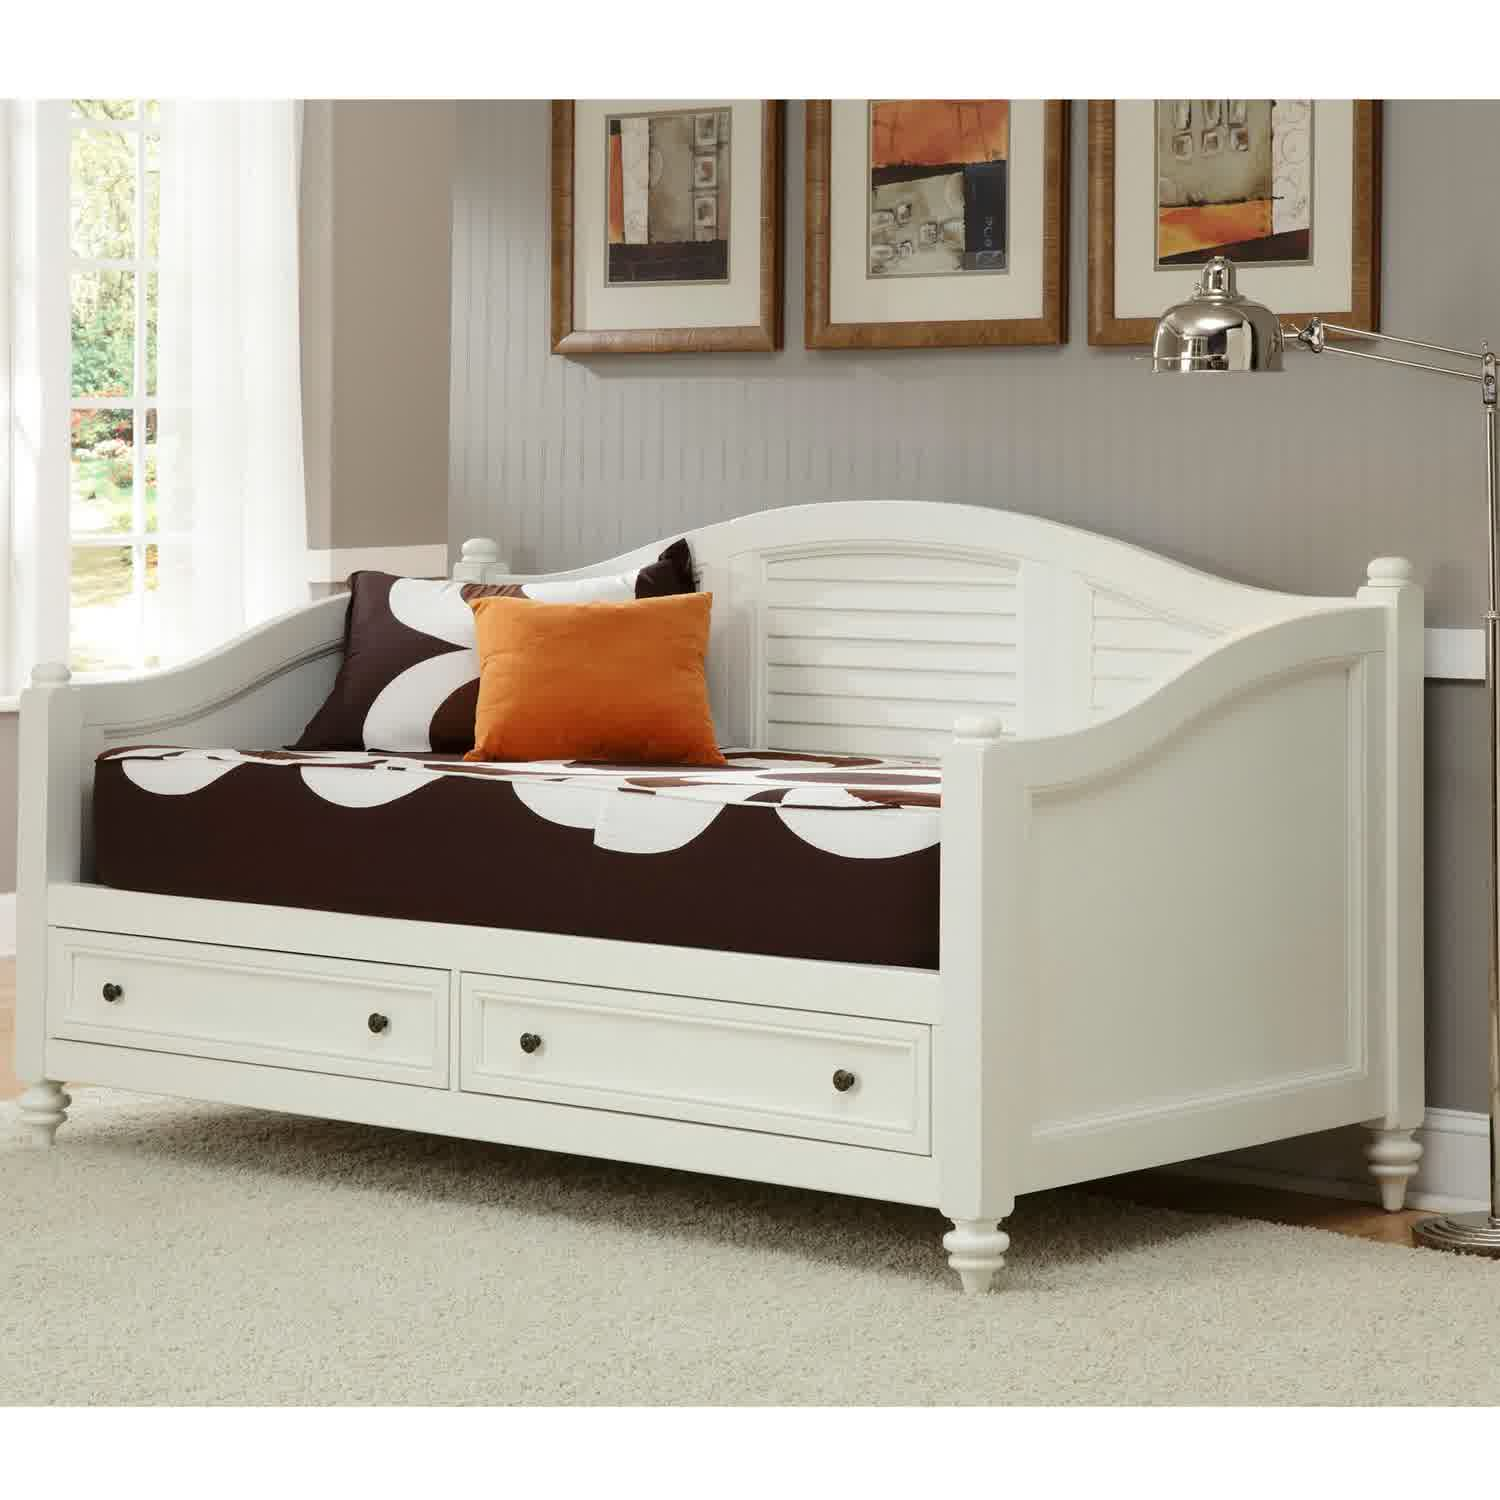 Daybed frame wooden - White Coated Wood Daybed Frame Idea With Drawers And Comfy Bedding Plus Its Pillows White Area